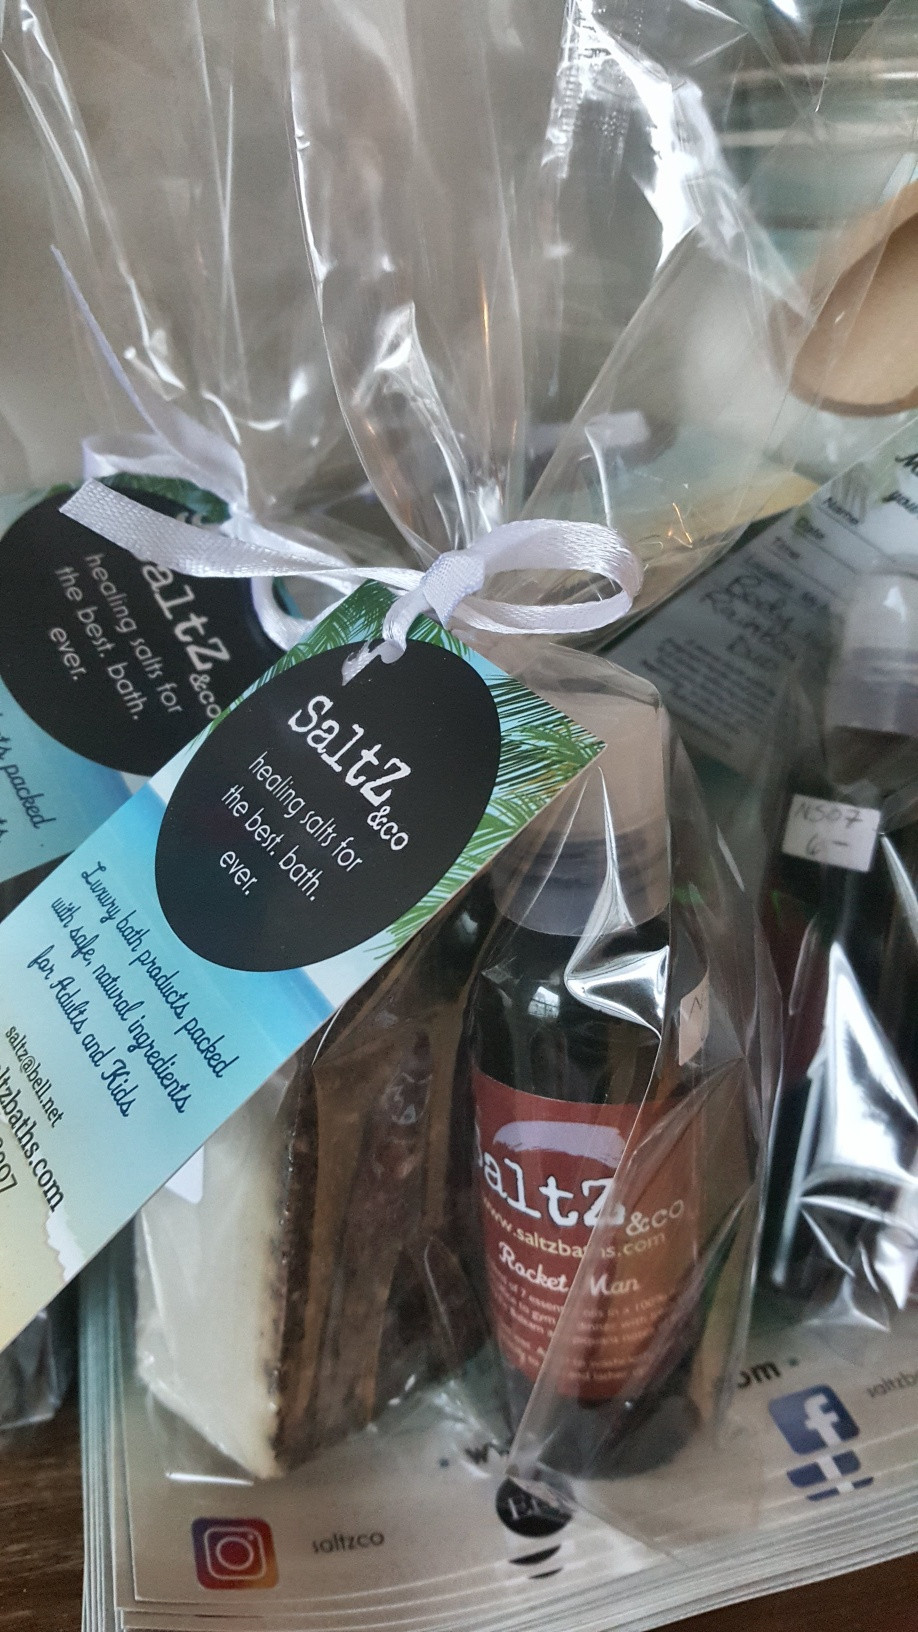 Men's body wash and natural soap gift